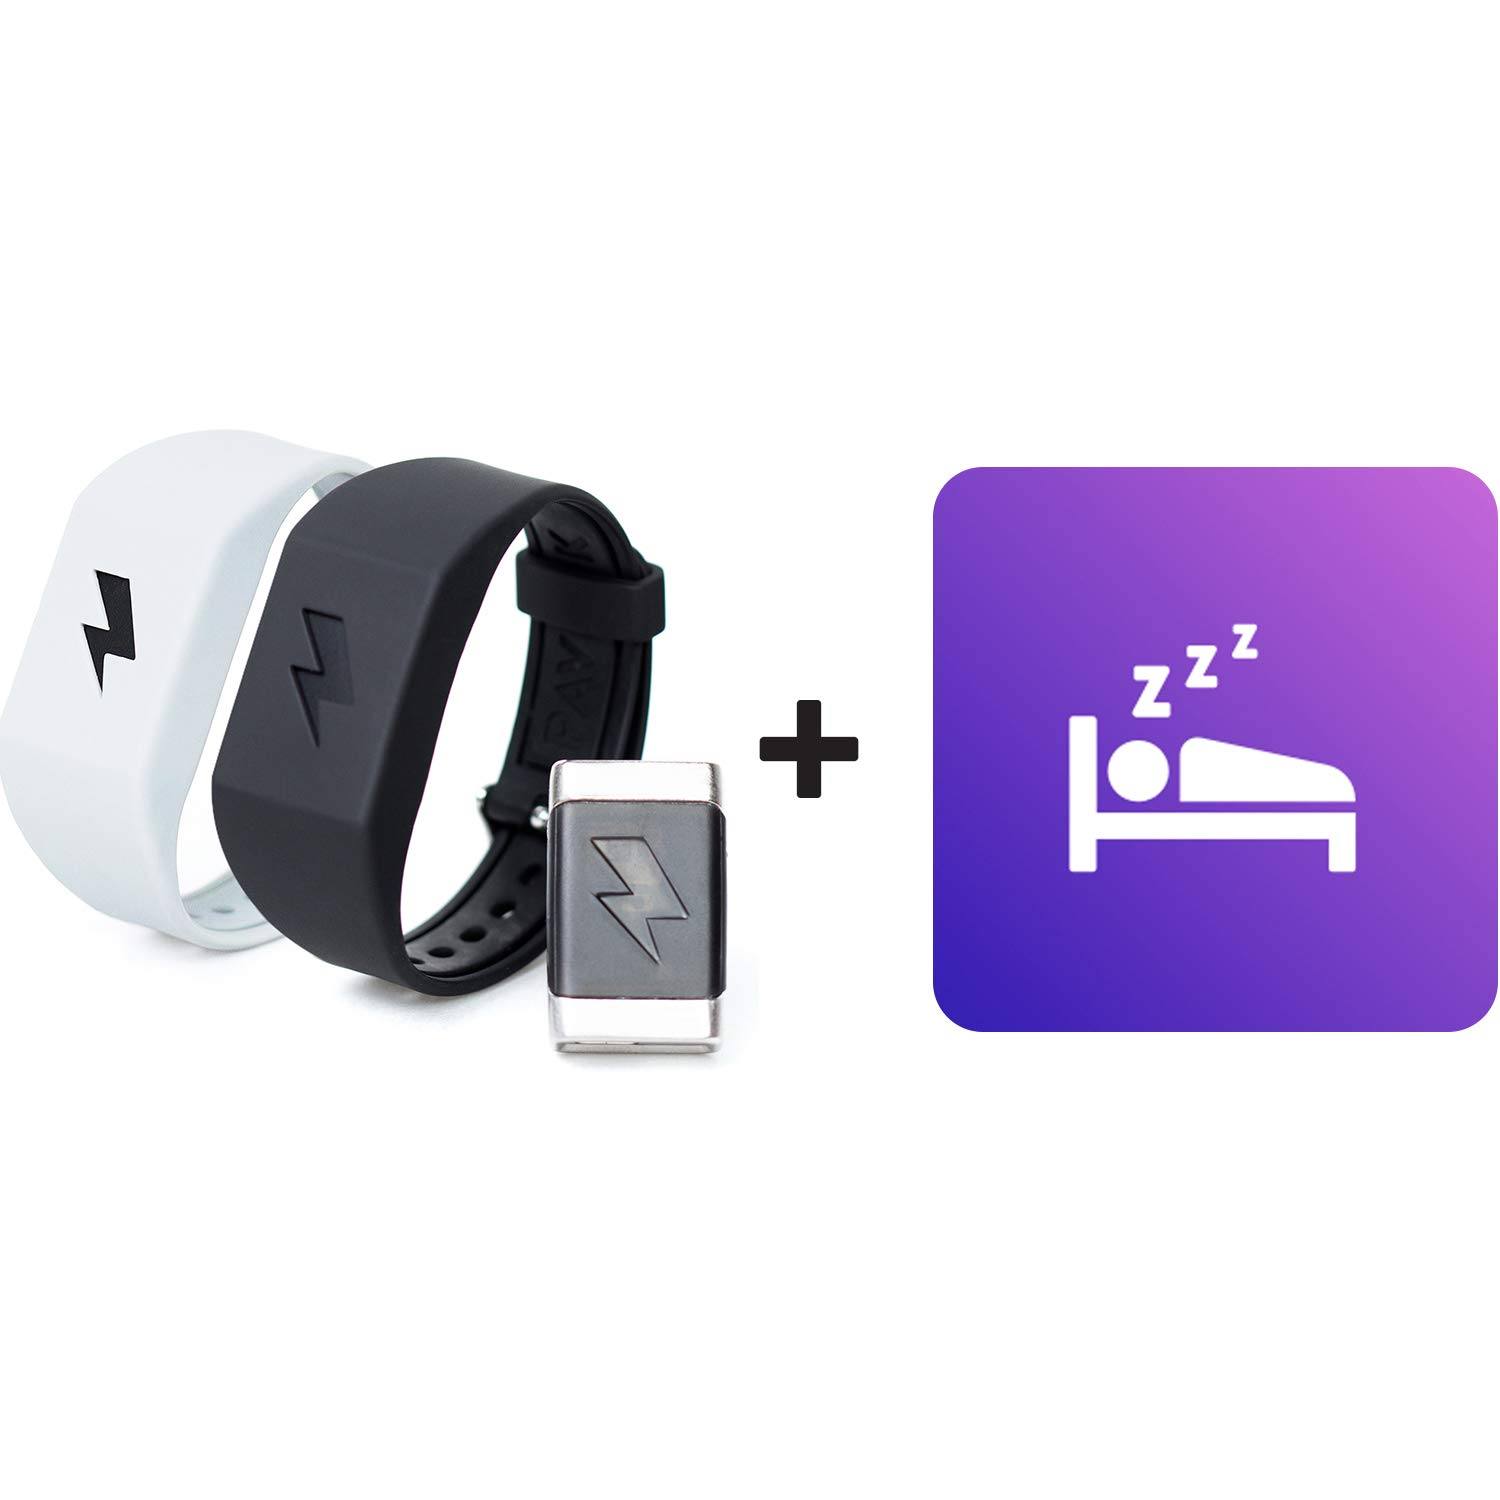 Pavlok Shock Clock Wake Up Trainer with Additional Silicone Band (White) and Exclusive Habit Change eBook - Wearable Smart Alarm Clock - Never Hit Snooze Again by Pavlok (Image #3)